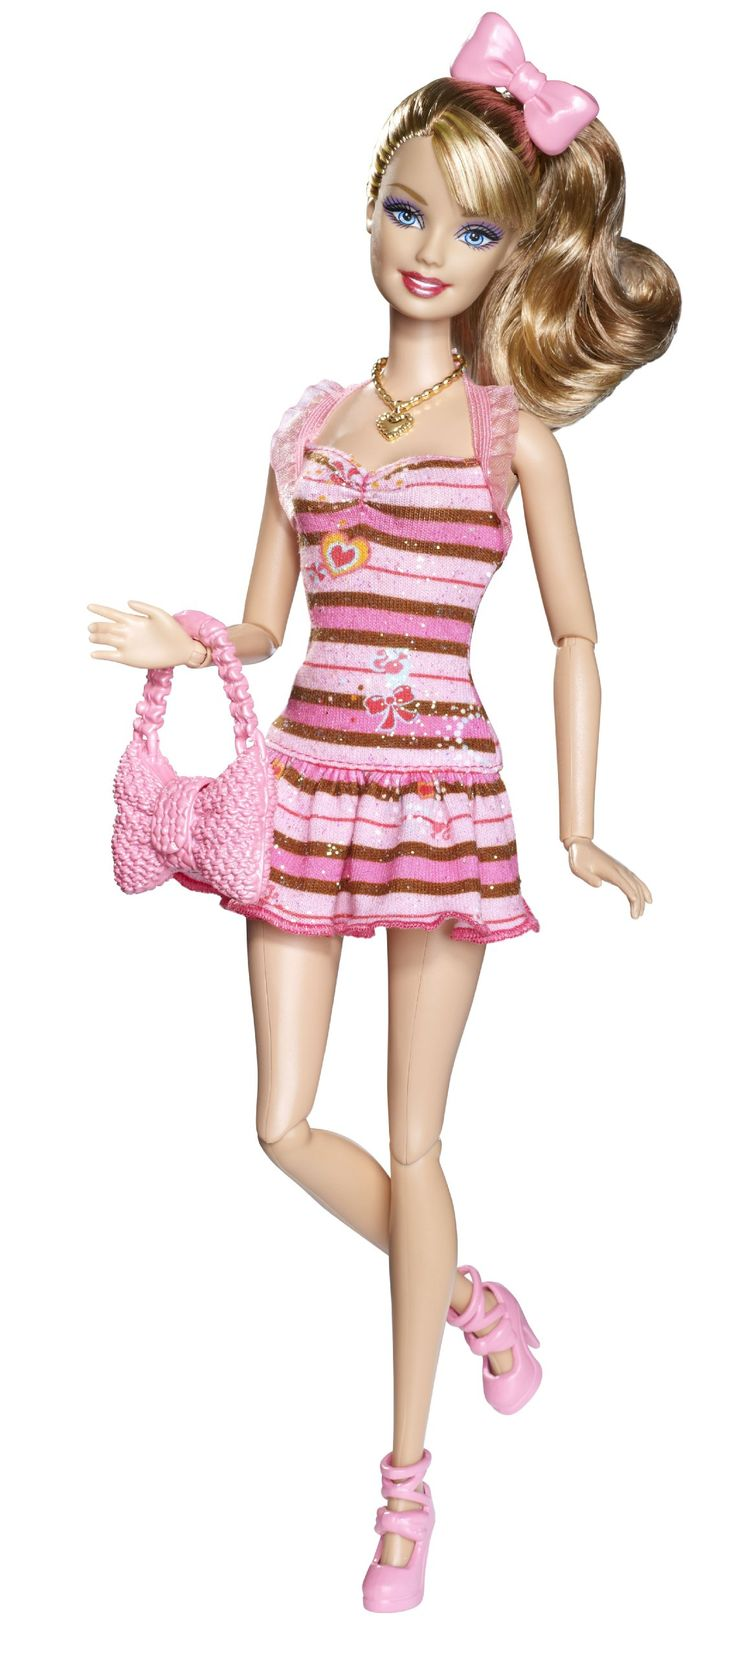 Barbie deluxe furniture stovetop to tabletop kitchen doll target - Barbie Fashionistas Swappin Styles Puppe Sweetie